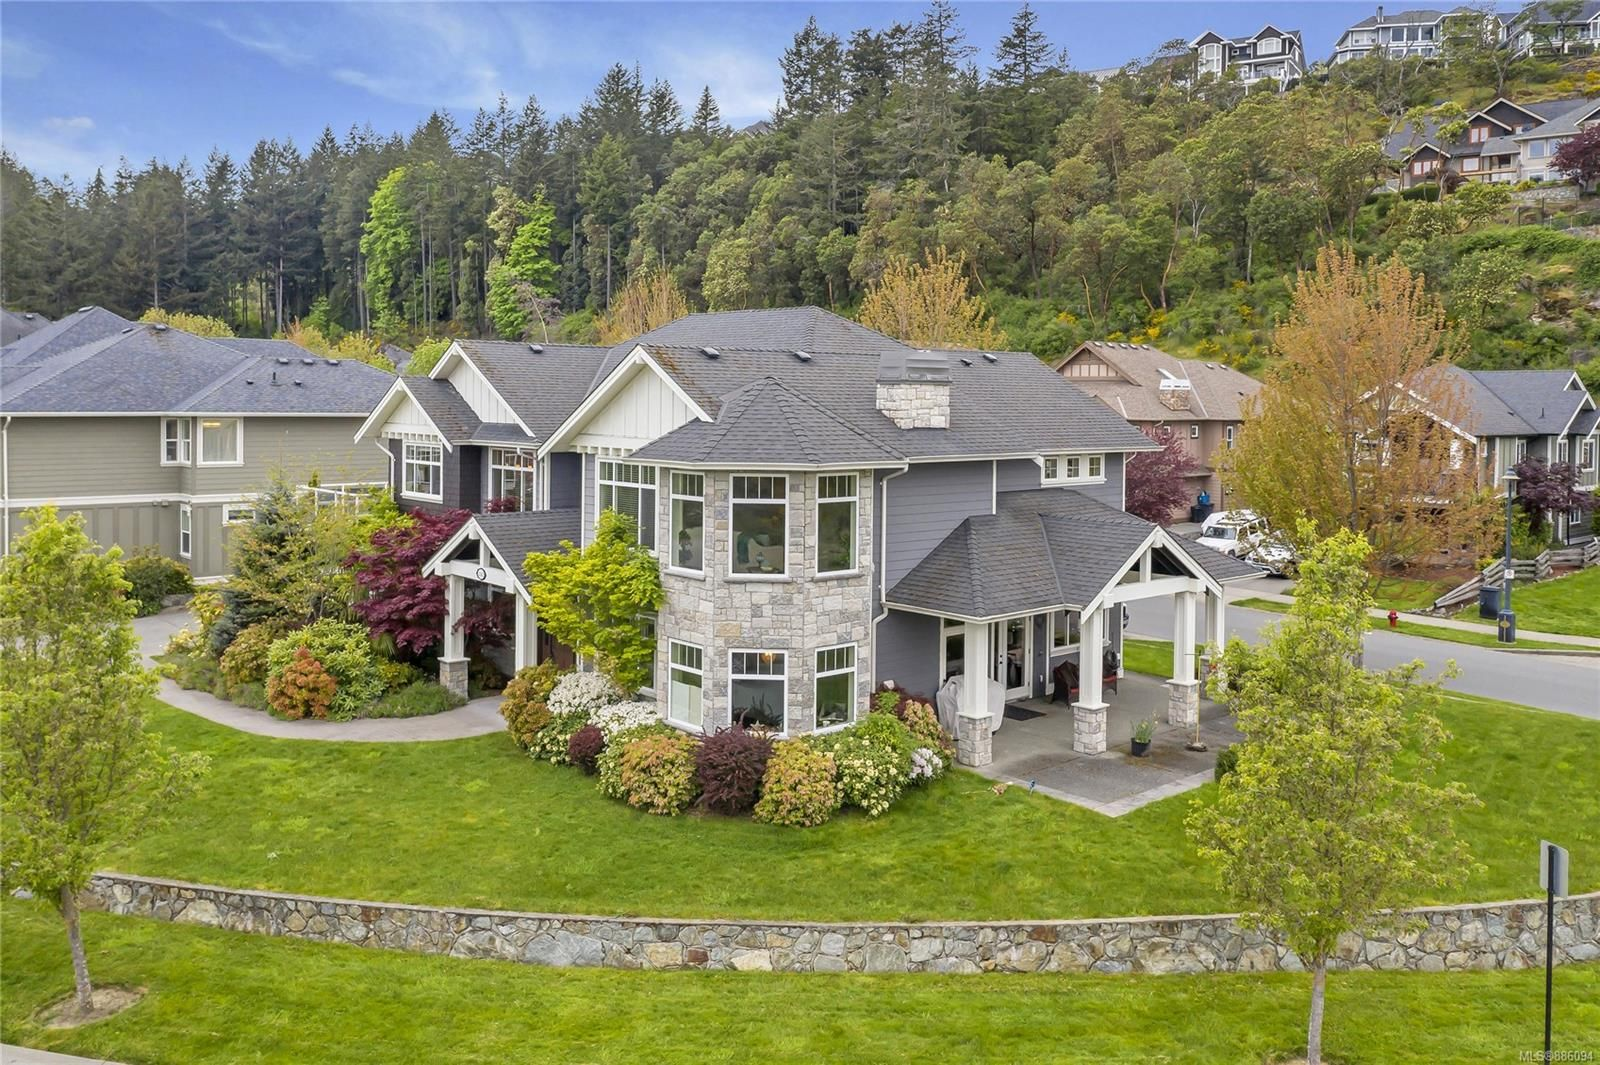 Main Photo: 2142 Blue Grouse Plat in : La Bear Mountain House for sale (Langford)  : MLS®# 886094